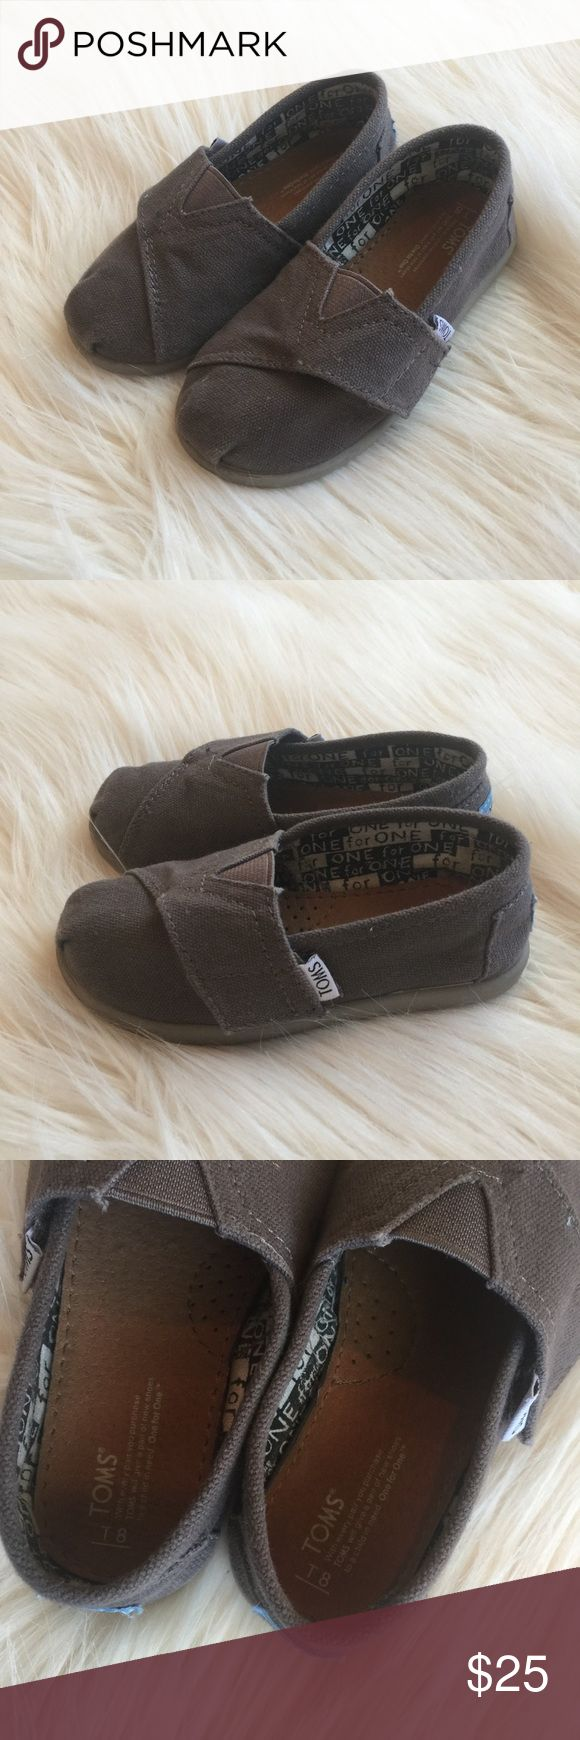 Tiny Toms Burlap Shoes in Gray Toddlers Size 8 T8 Super cute tiny Tom's burlap shoes in a size 8 toddler. My son wore these maybe 4 to 5 times tops. They are in excellent condition and great addition to your little ones spring and summer wardrobe. TOMS Shoes